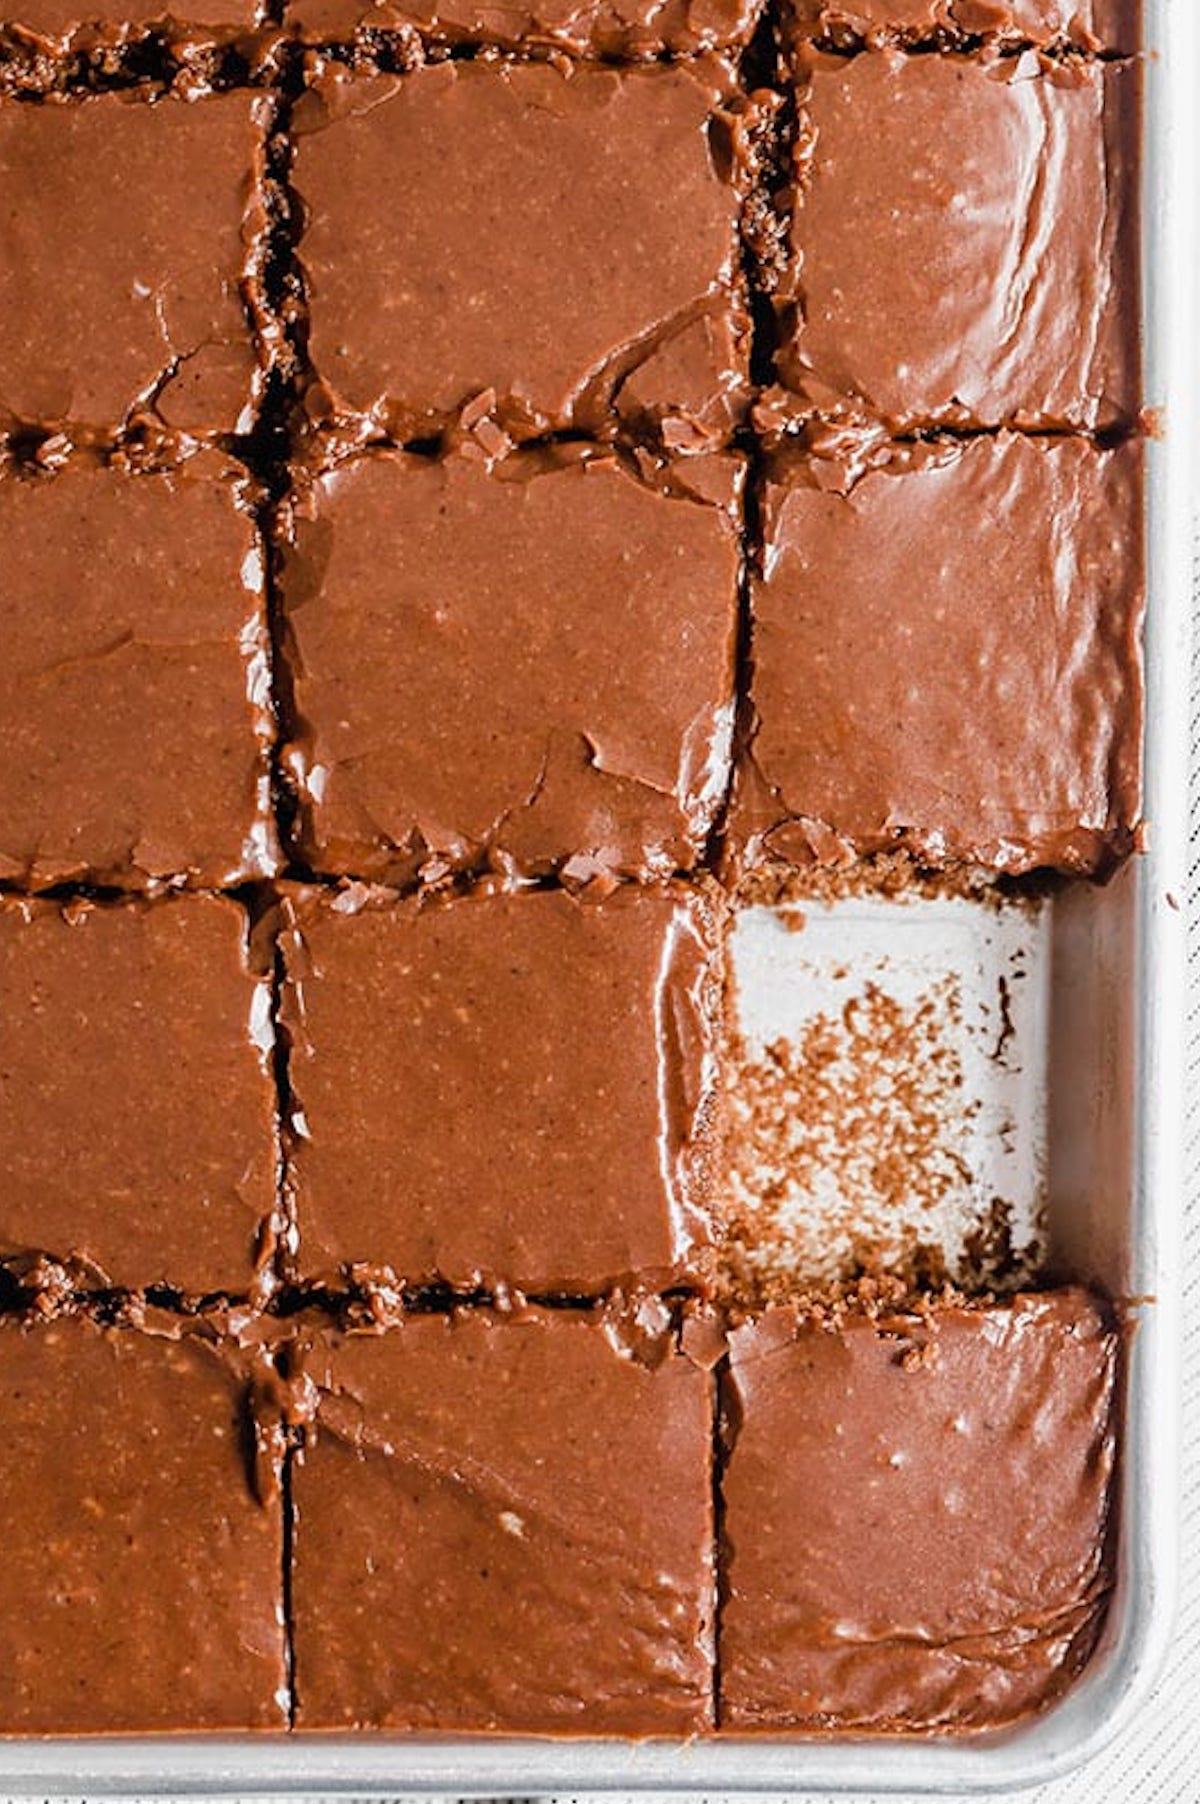 Overhead view of a chocolate Texas Sheet Cake that's been cut into square slices.